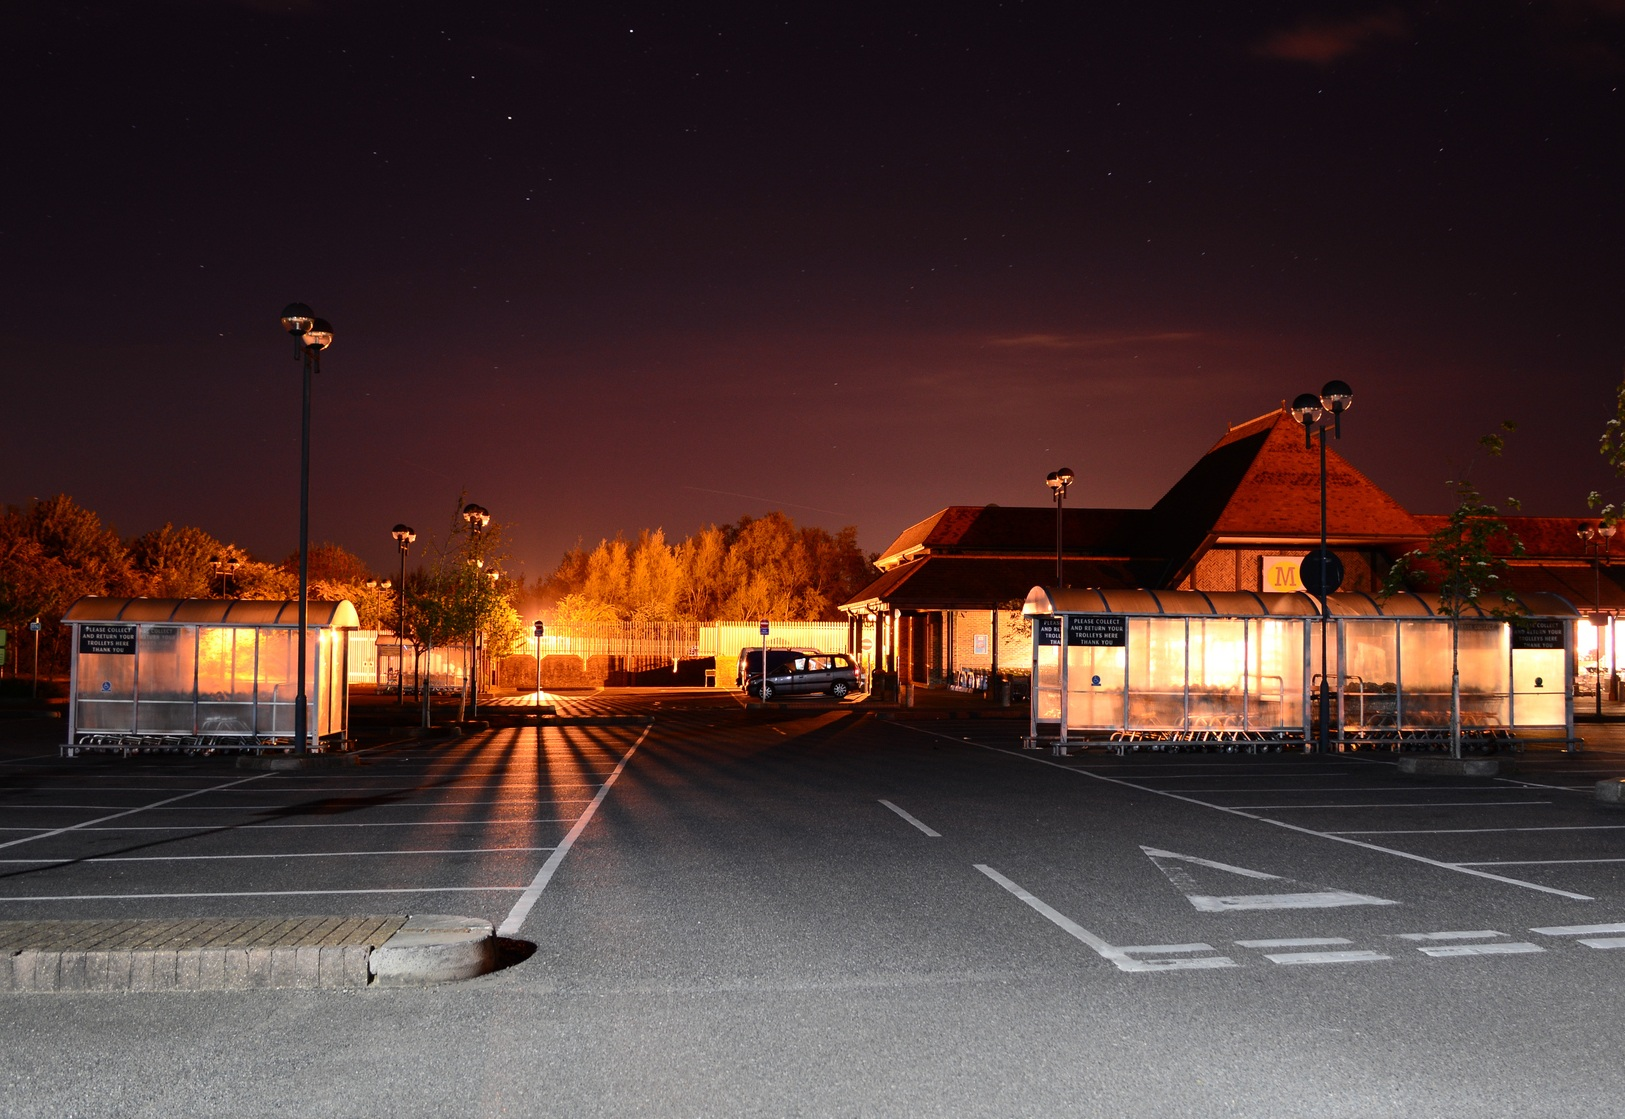 Store parking lot at Night